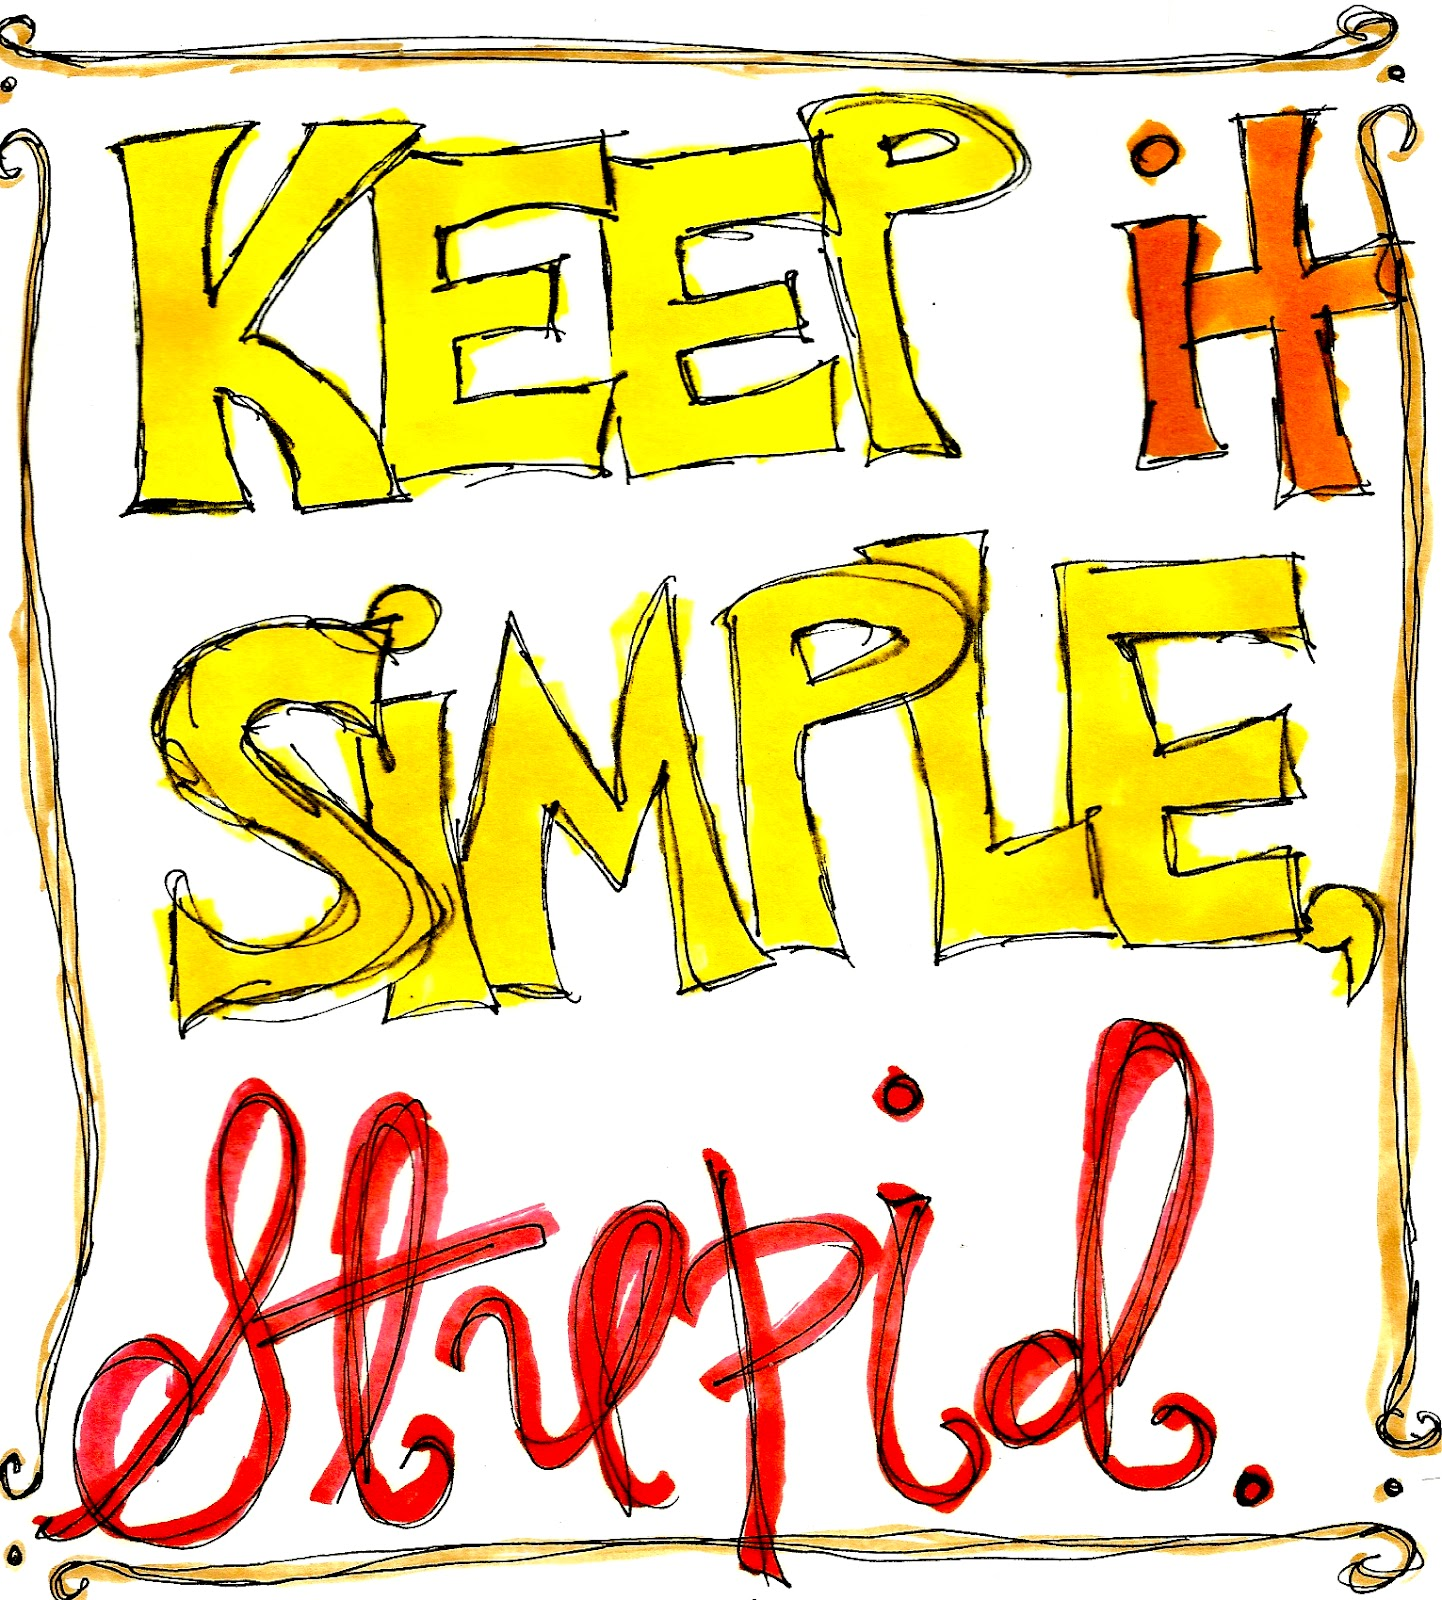 Keep It Simple Stupid Makes Art With Her Hands Makes